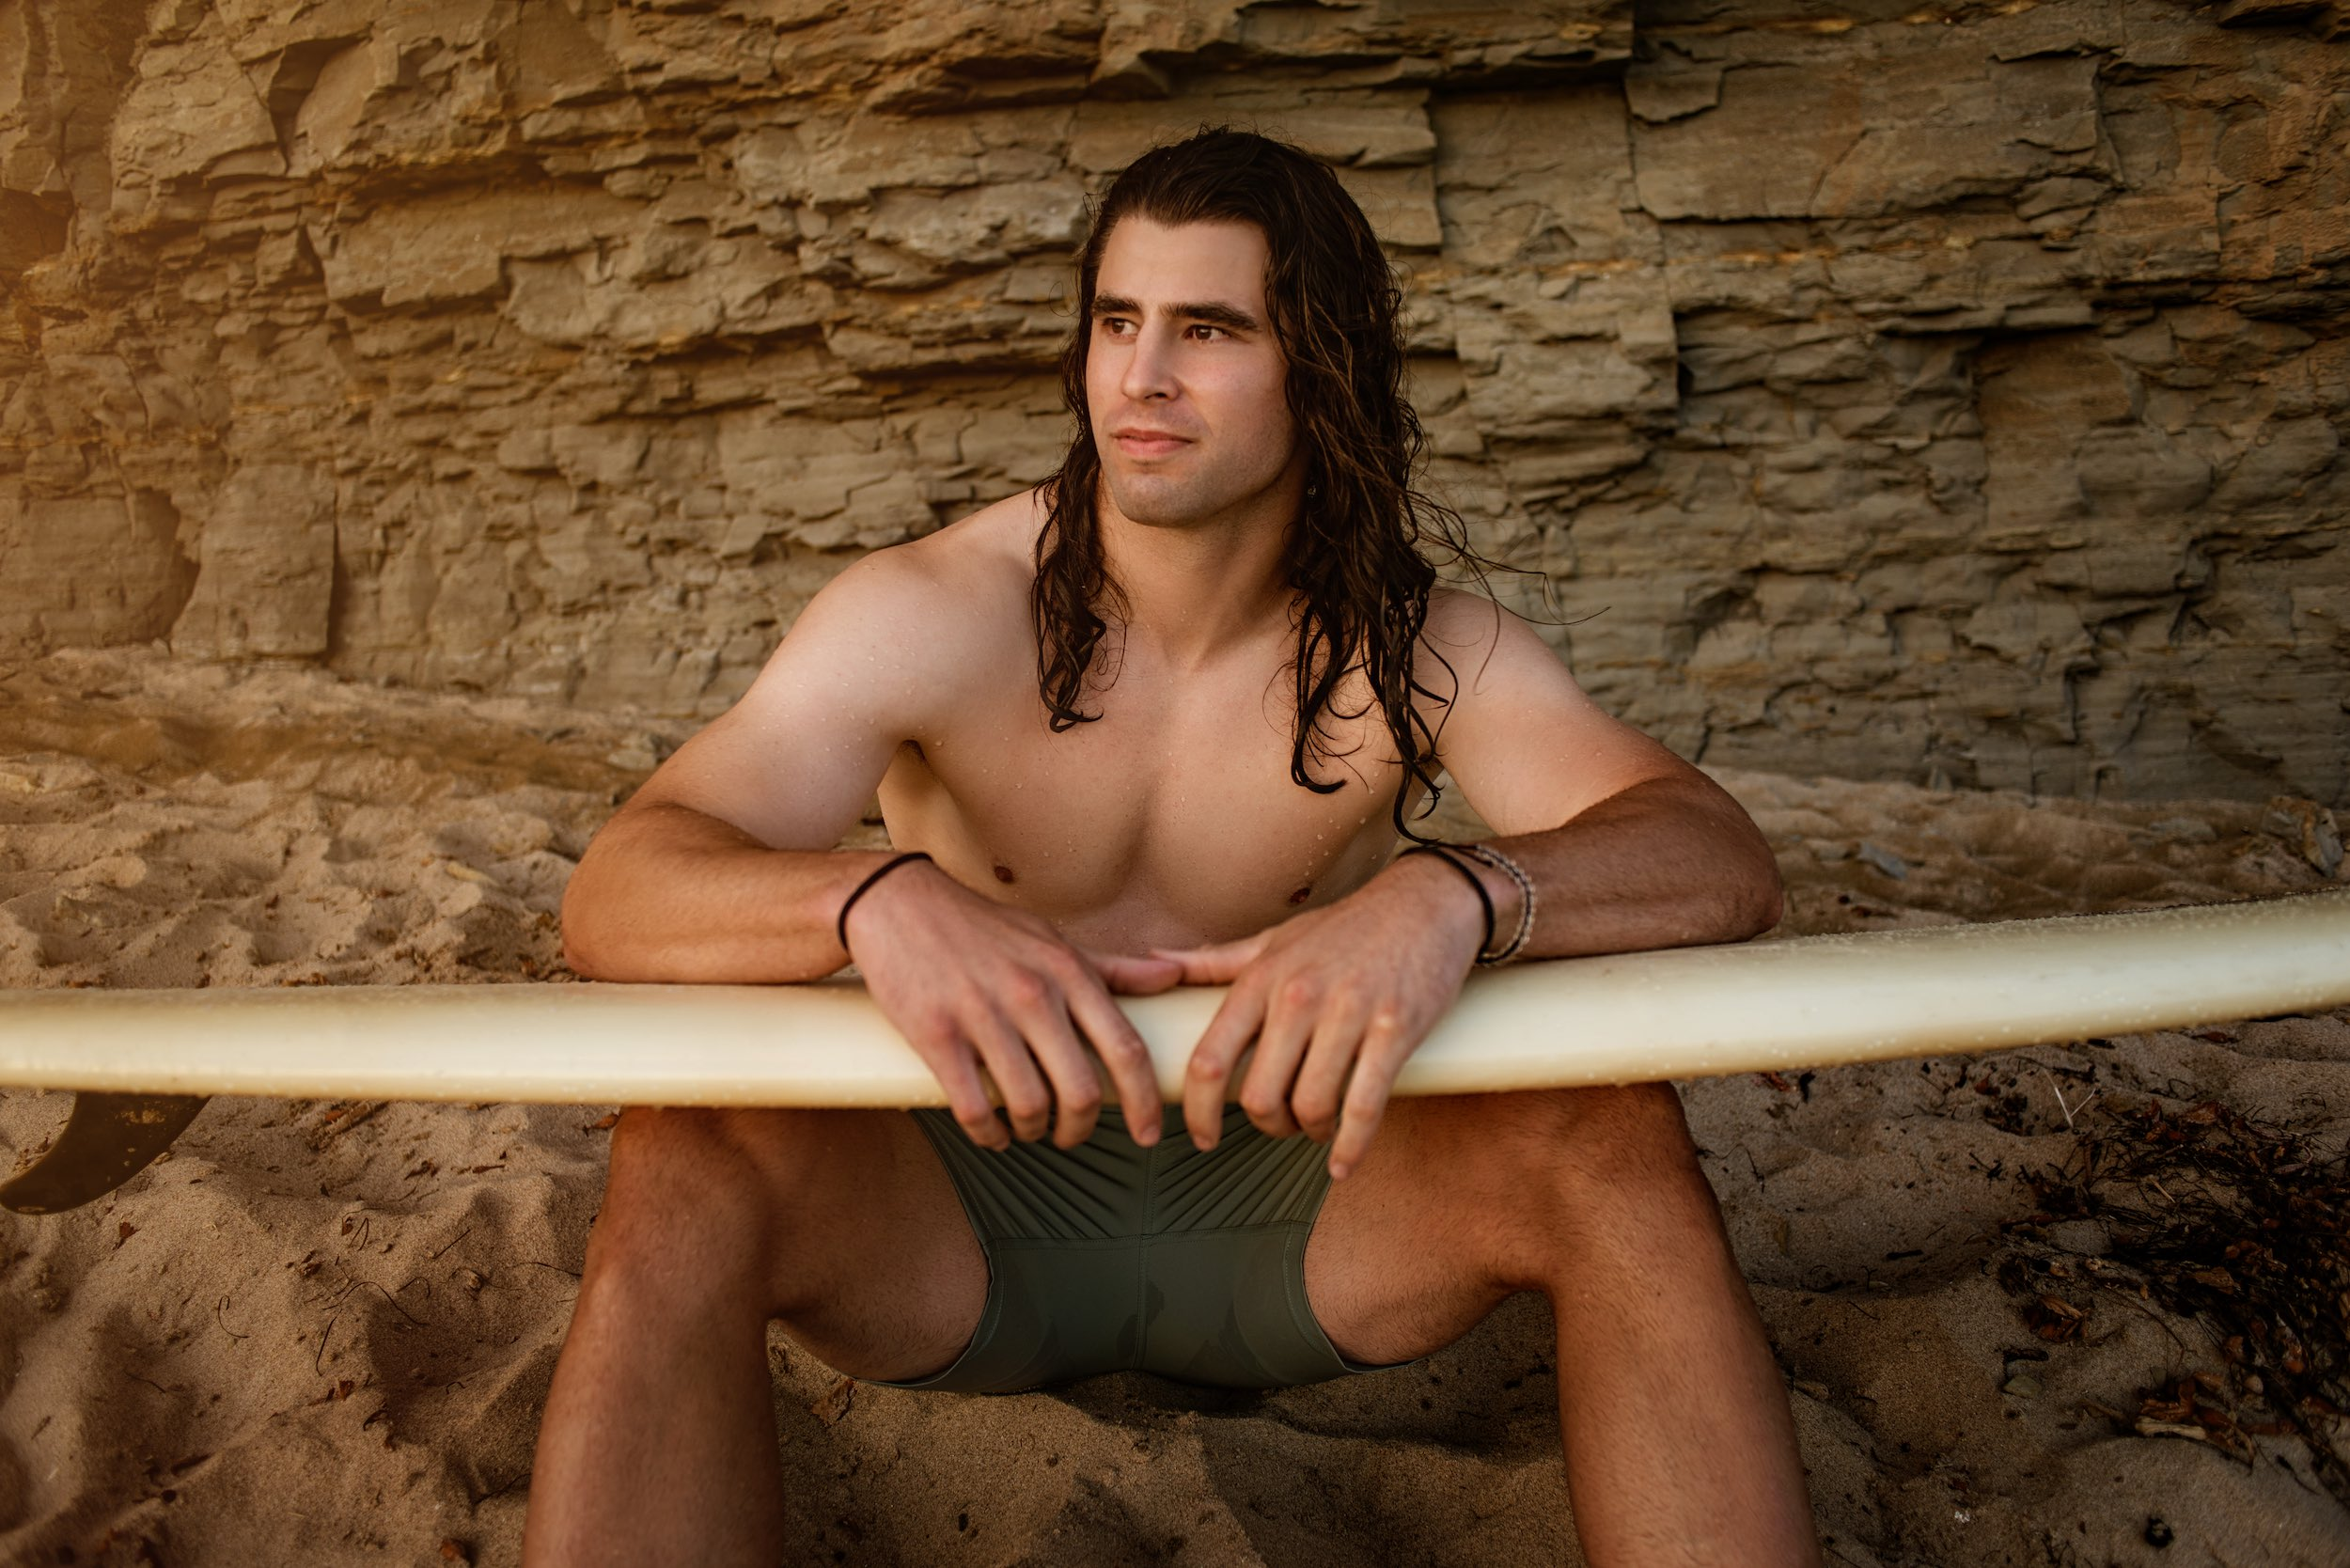 Ronan with Surf Board - Peter Lefevre Photography - July 2020